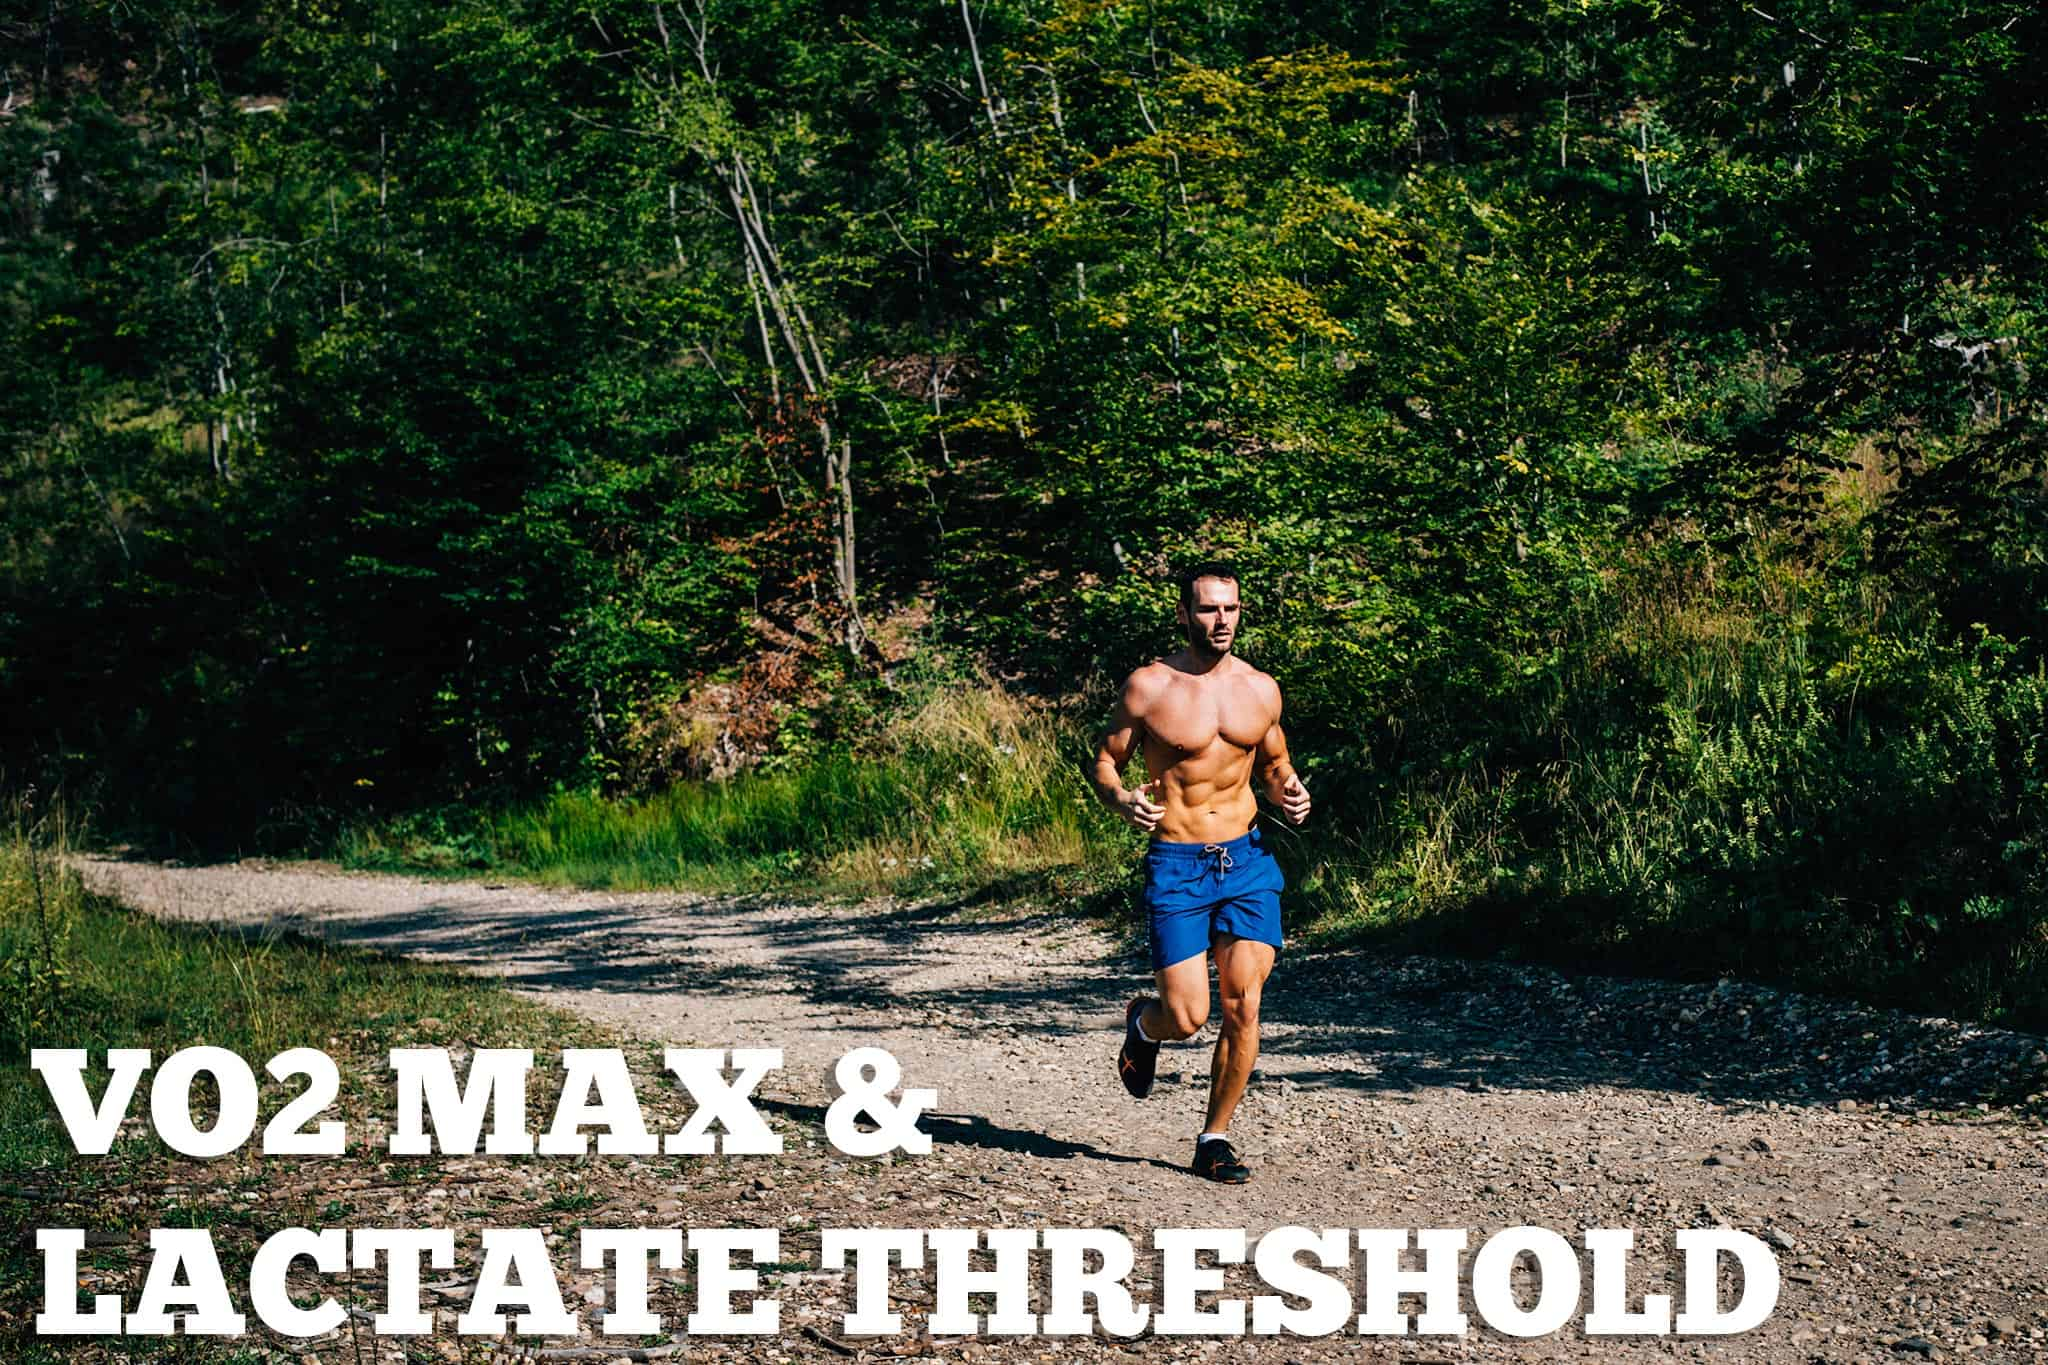 VO2 max and lactate threshold